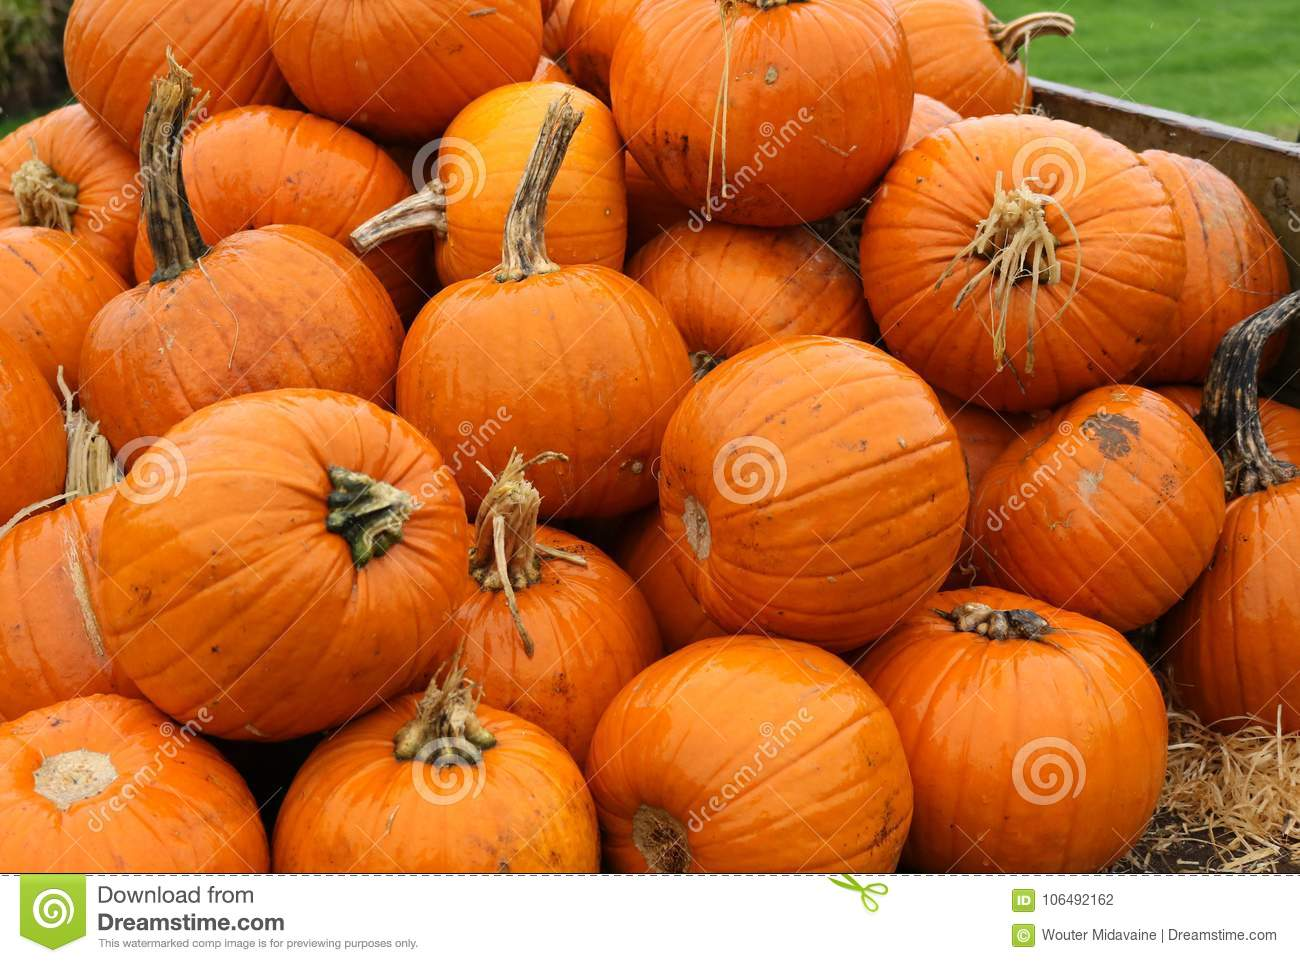 Now? how many pumpkins did you need?